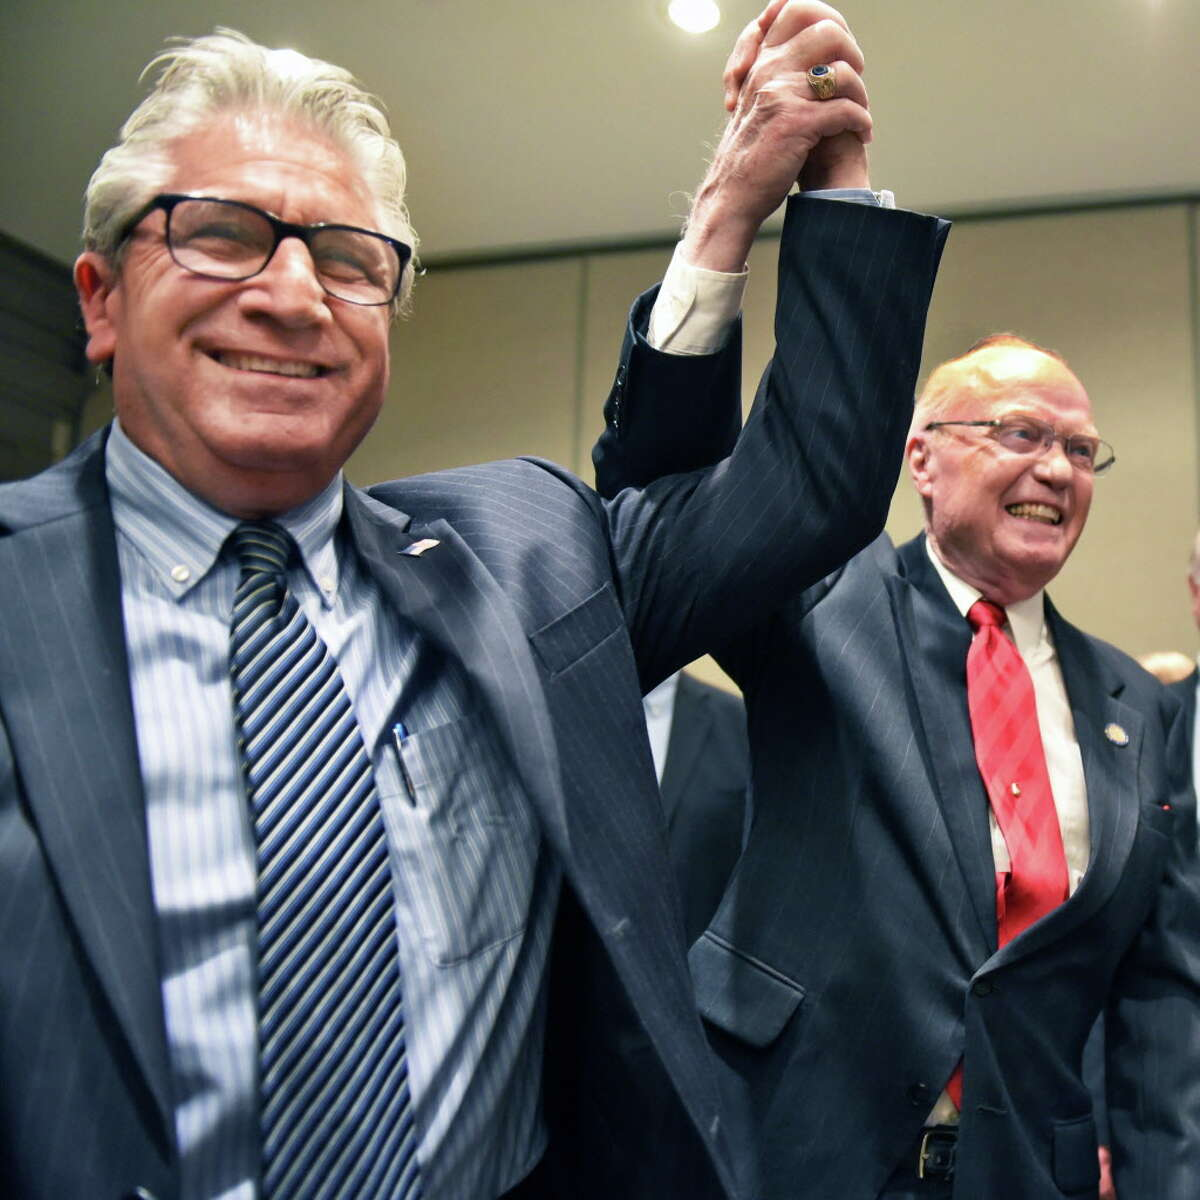 State Senate candidate Jim Tedisco, left, has his hand raised in victory by out-going Senator Hugh Farley during the Saratoga County Republican Committee gathering Tuesday Nov. 8, 2016 in Saratoga Springs, NY. (John Carl D'Annibale / Times Union)